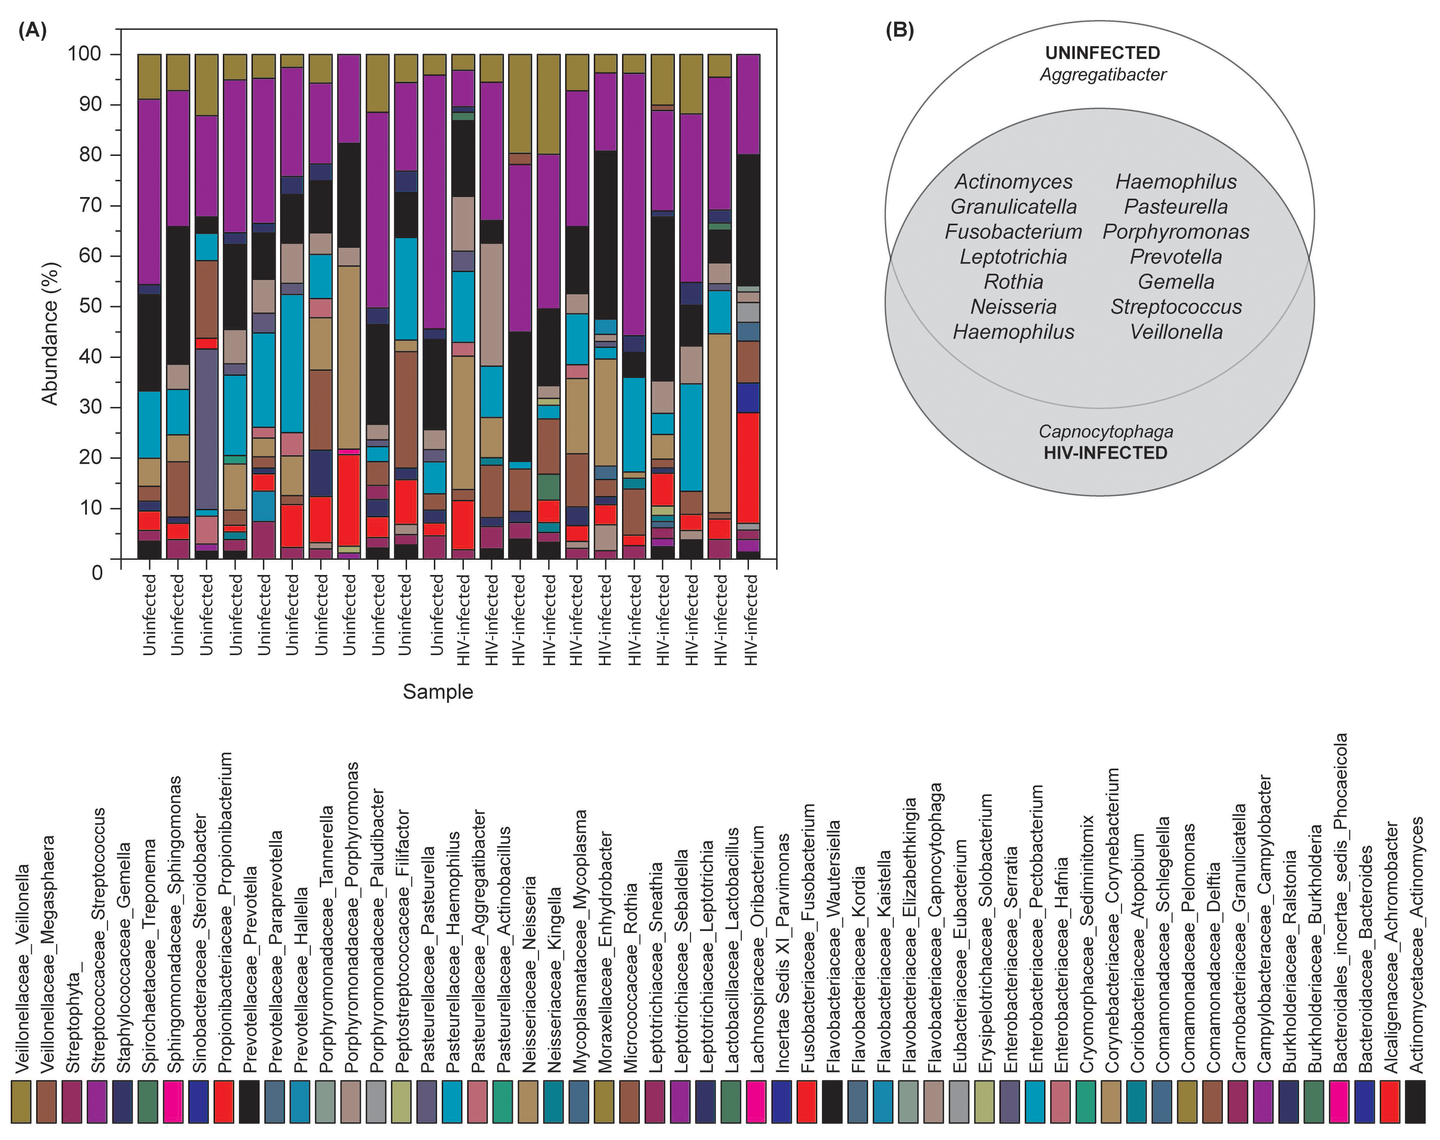 Bacterial microbiome (bacteriome) of HIV-infected patients and uninfected individuals.